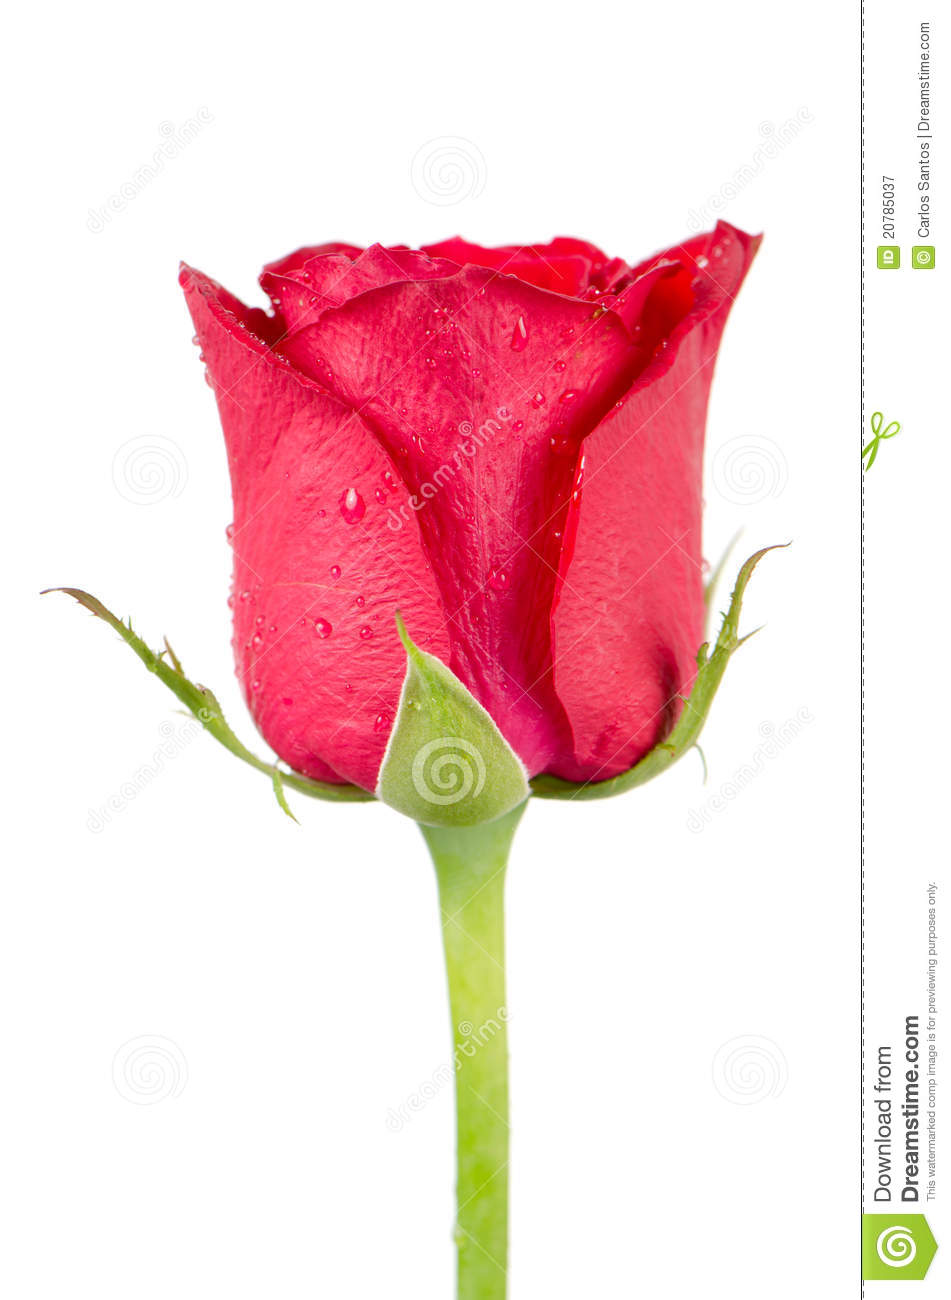 Pink rose flower stock image image of perfume passion 20785037 pink rose flower mightylinksfo